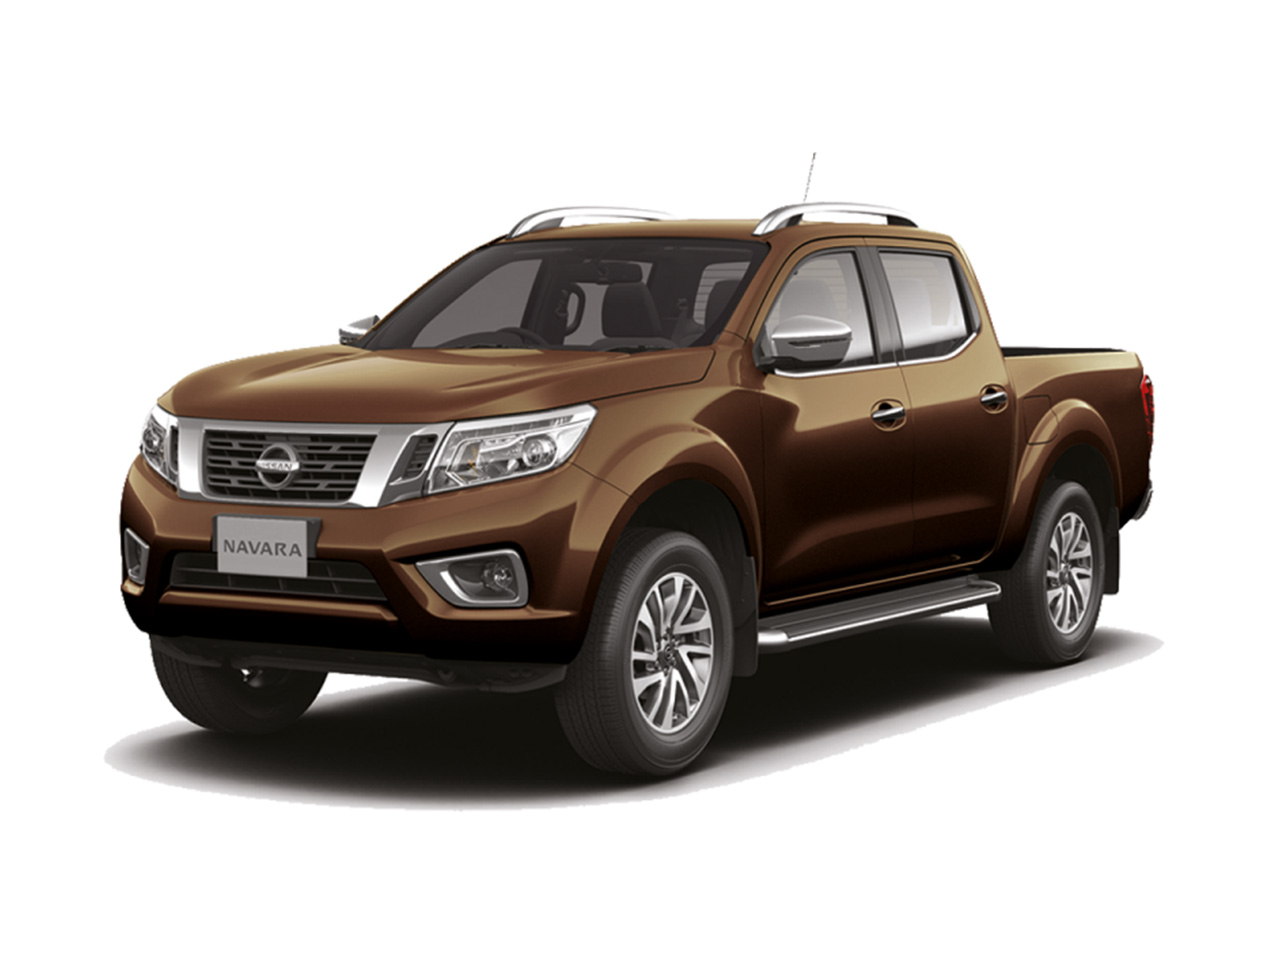 2018 nissan navara prices in uae gulf specs reviews for. Black Bedroom Furniture Sets. Home Design Ideas